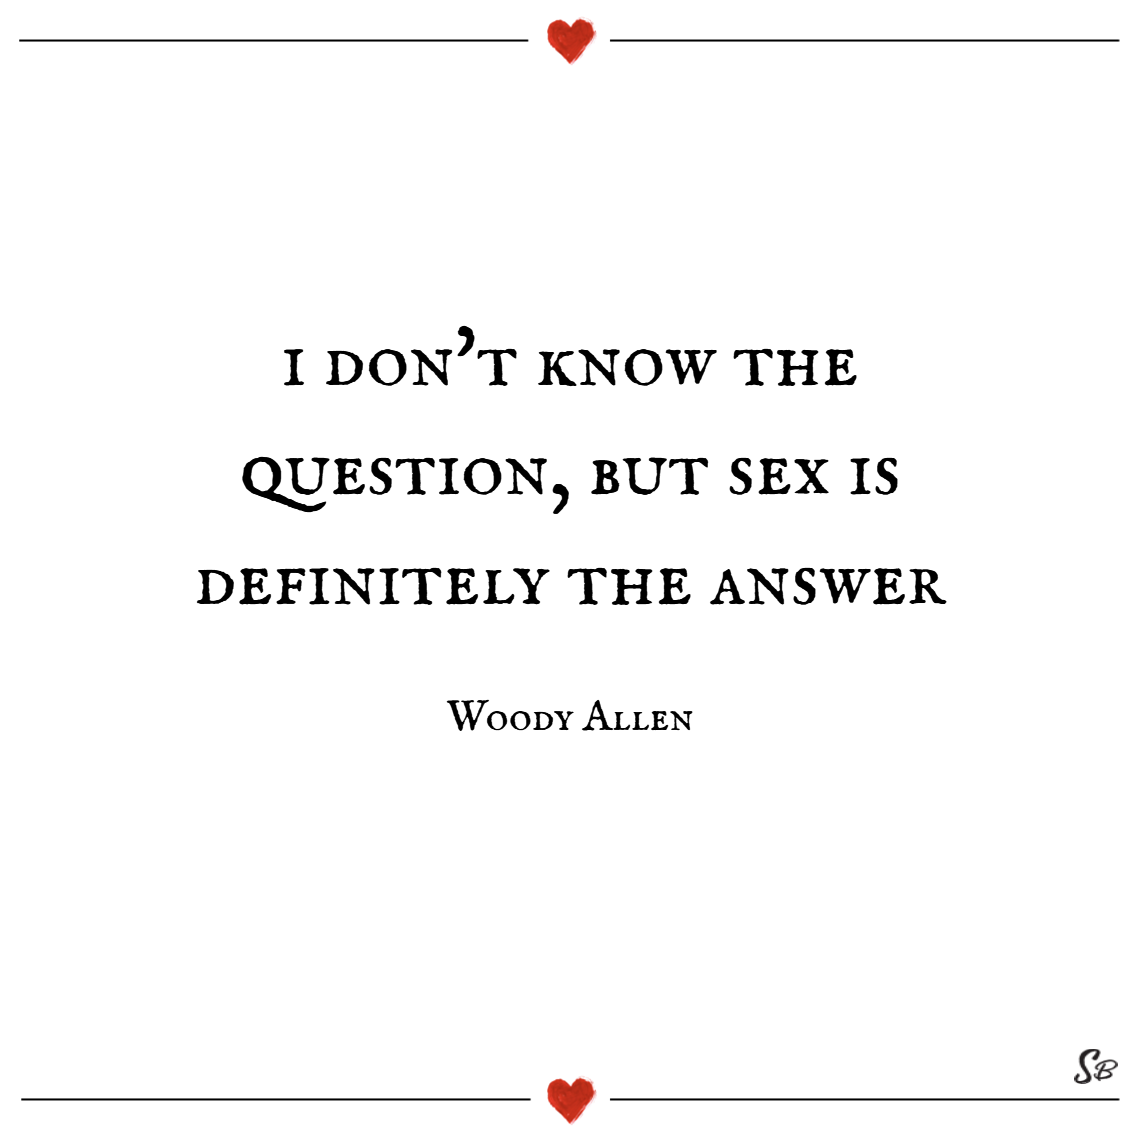 I don't know the question, but sex is definitely the answer. – woody allen